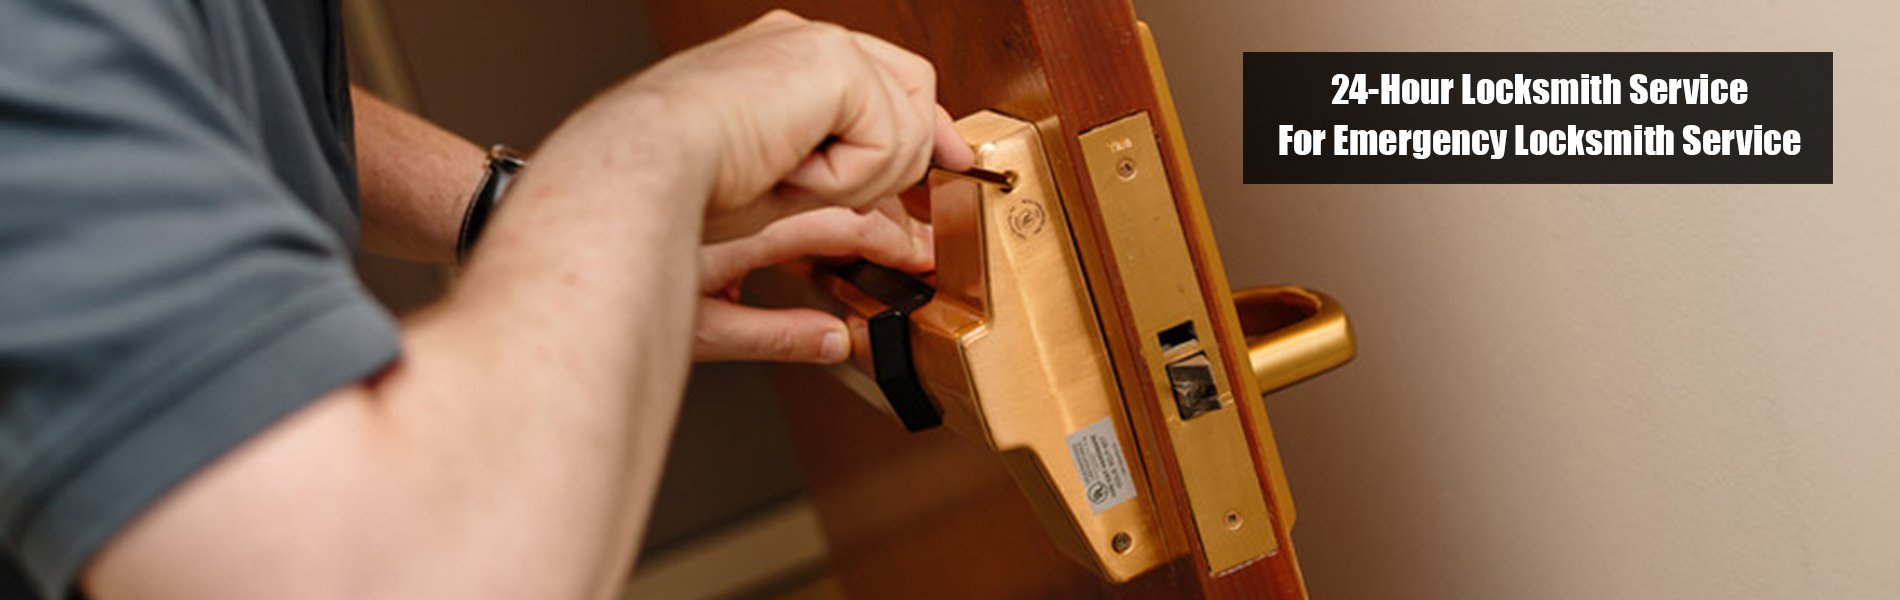 Folsom Lock And Locksmith, Folsom, PA 610-226-2131